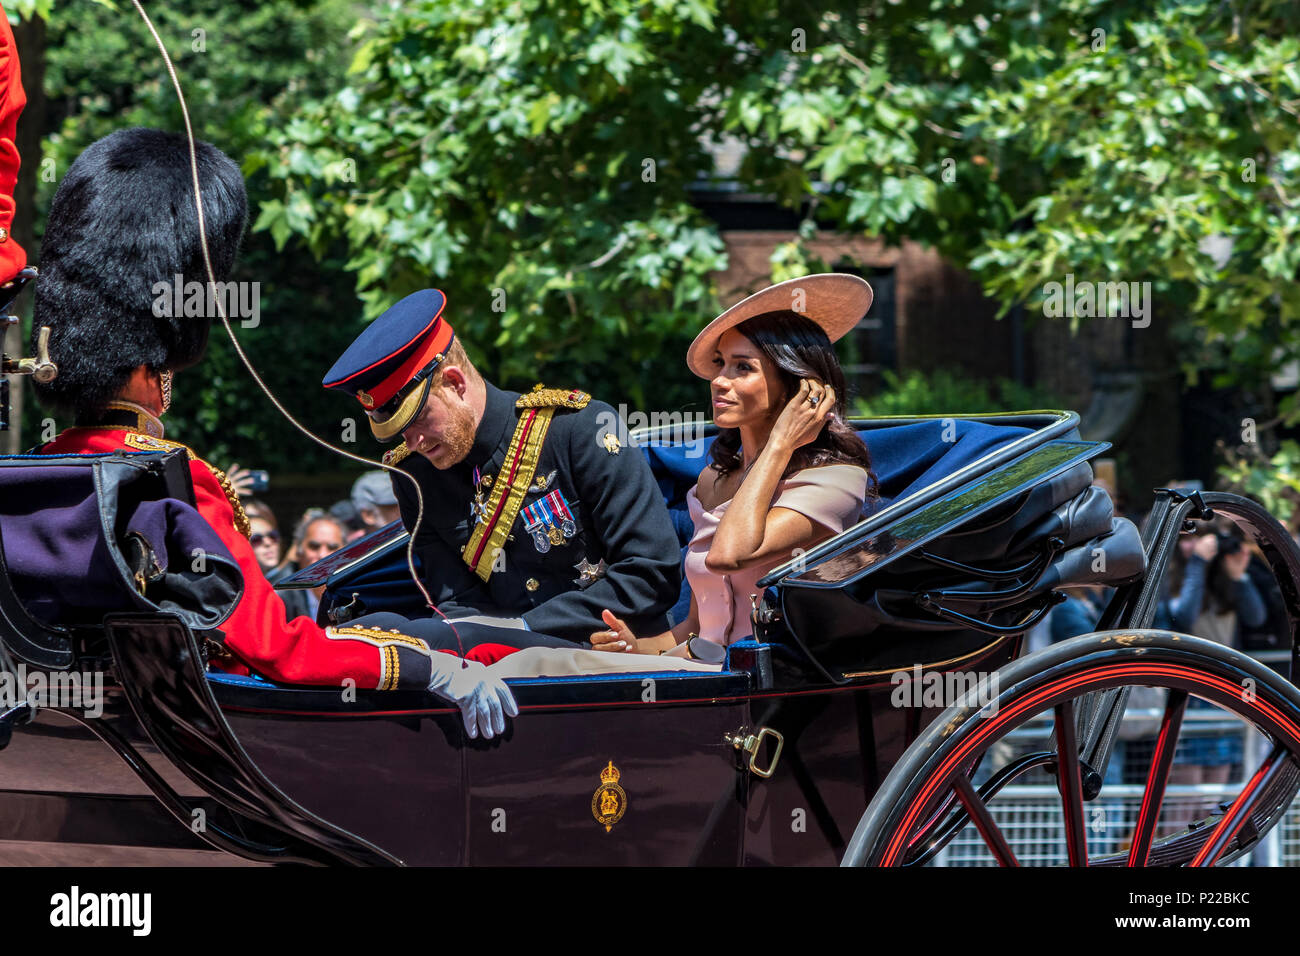 Prince Harry ,Duke of Sussex riding along The Mall in a carriage with Meghan Markle ,The Duchess Of Sussex ,at The Trooping Of The Colour  London,2018 Stock Photo